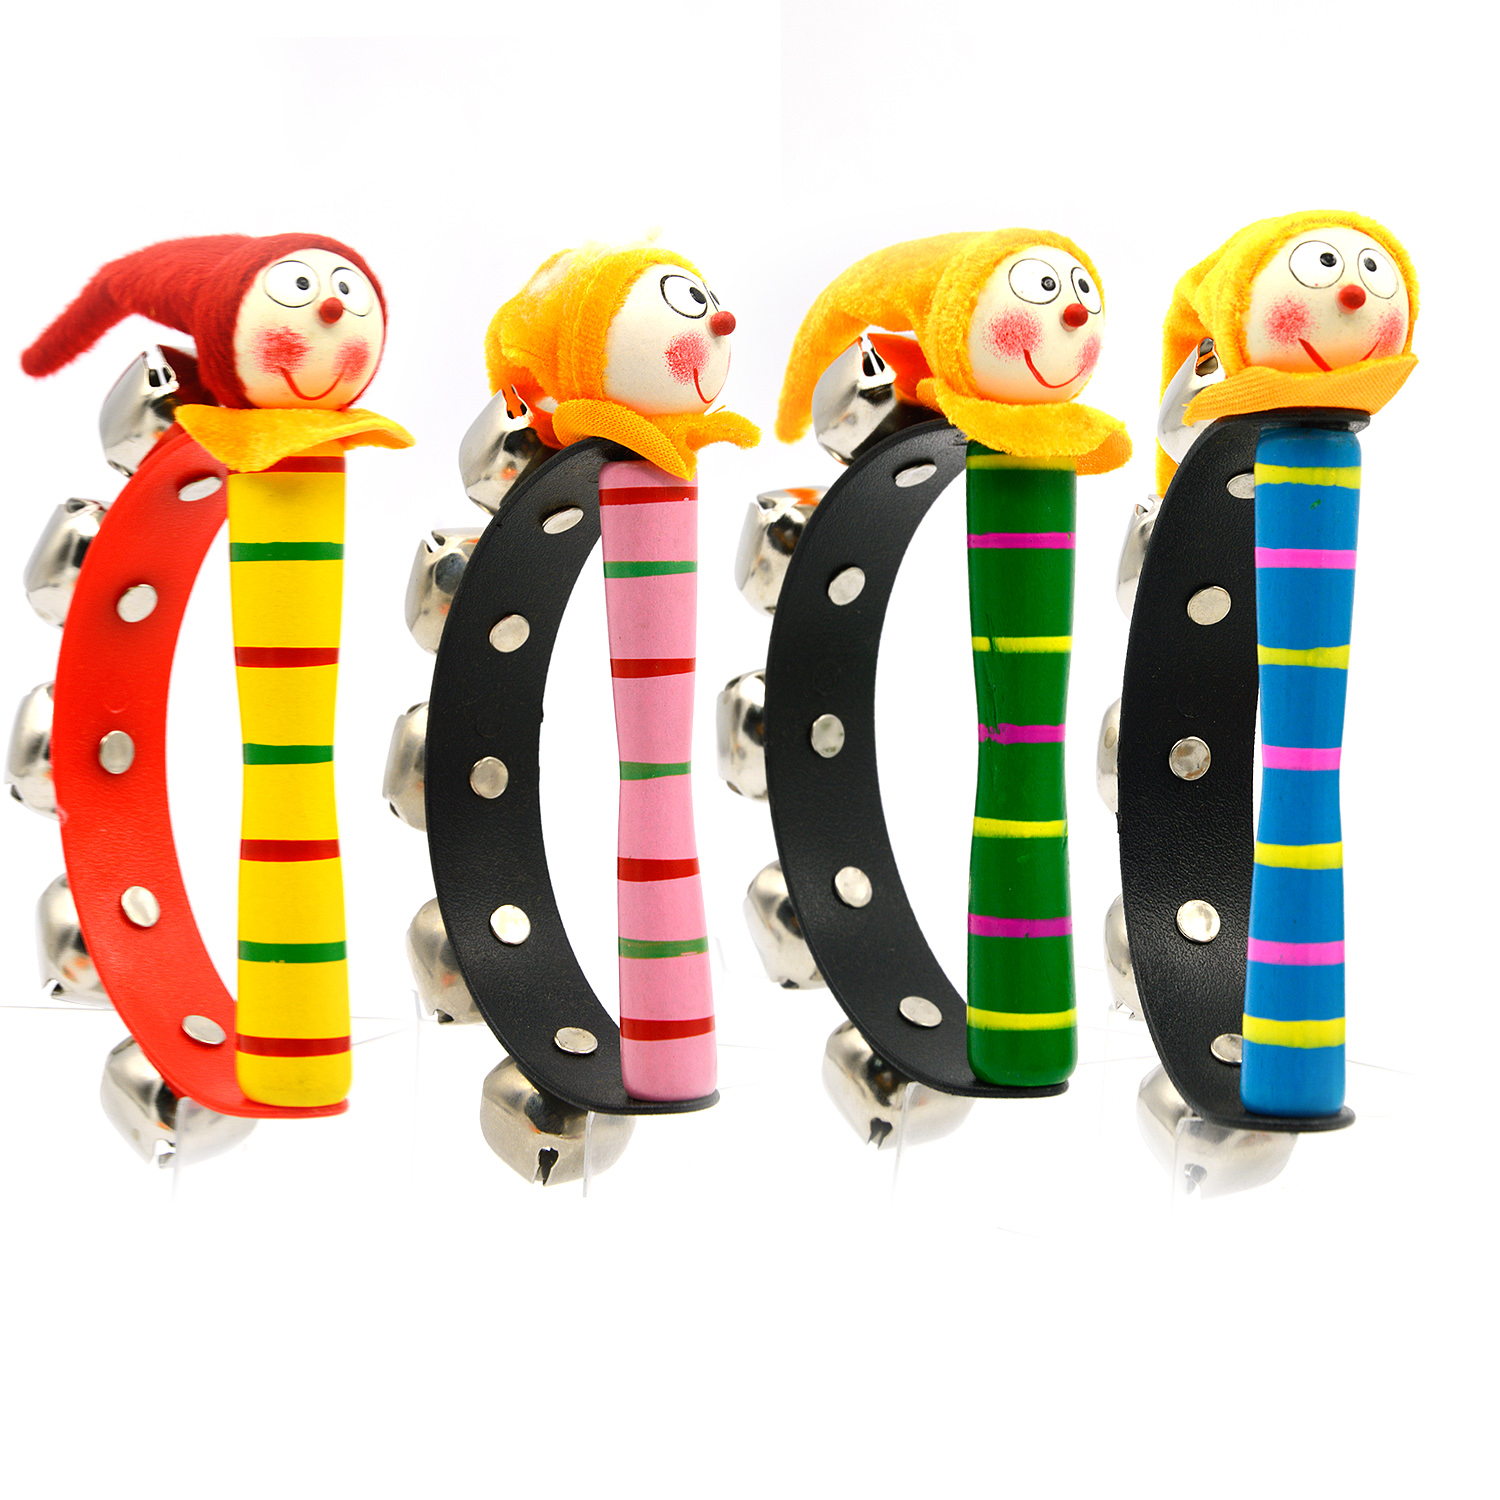 1Pcs Cute Wooden Clown Jingle Hand Shake Ring Bells Rattles Toy Musical Instruments Kid Baby Infant Educational Toy Random Color sneakers